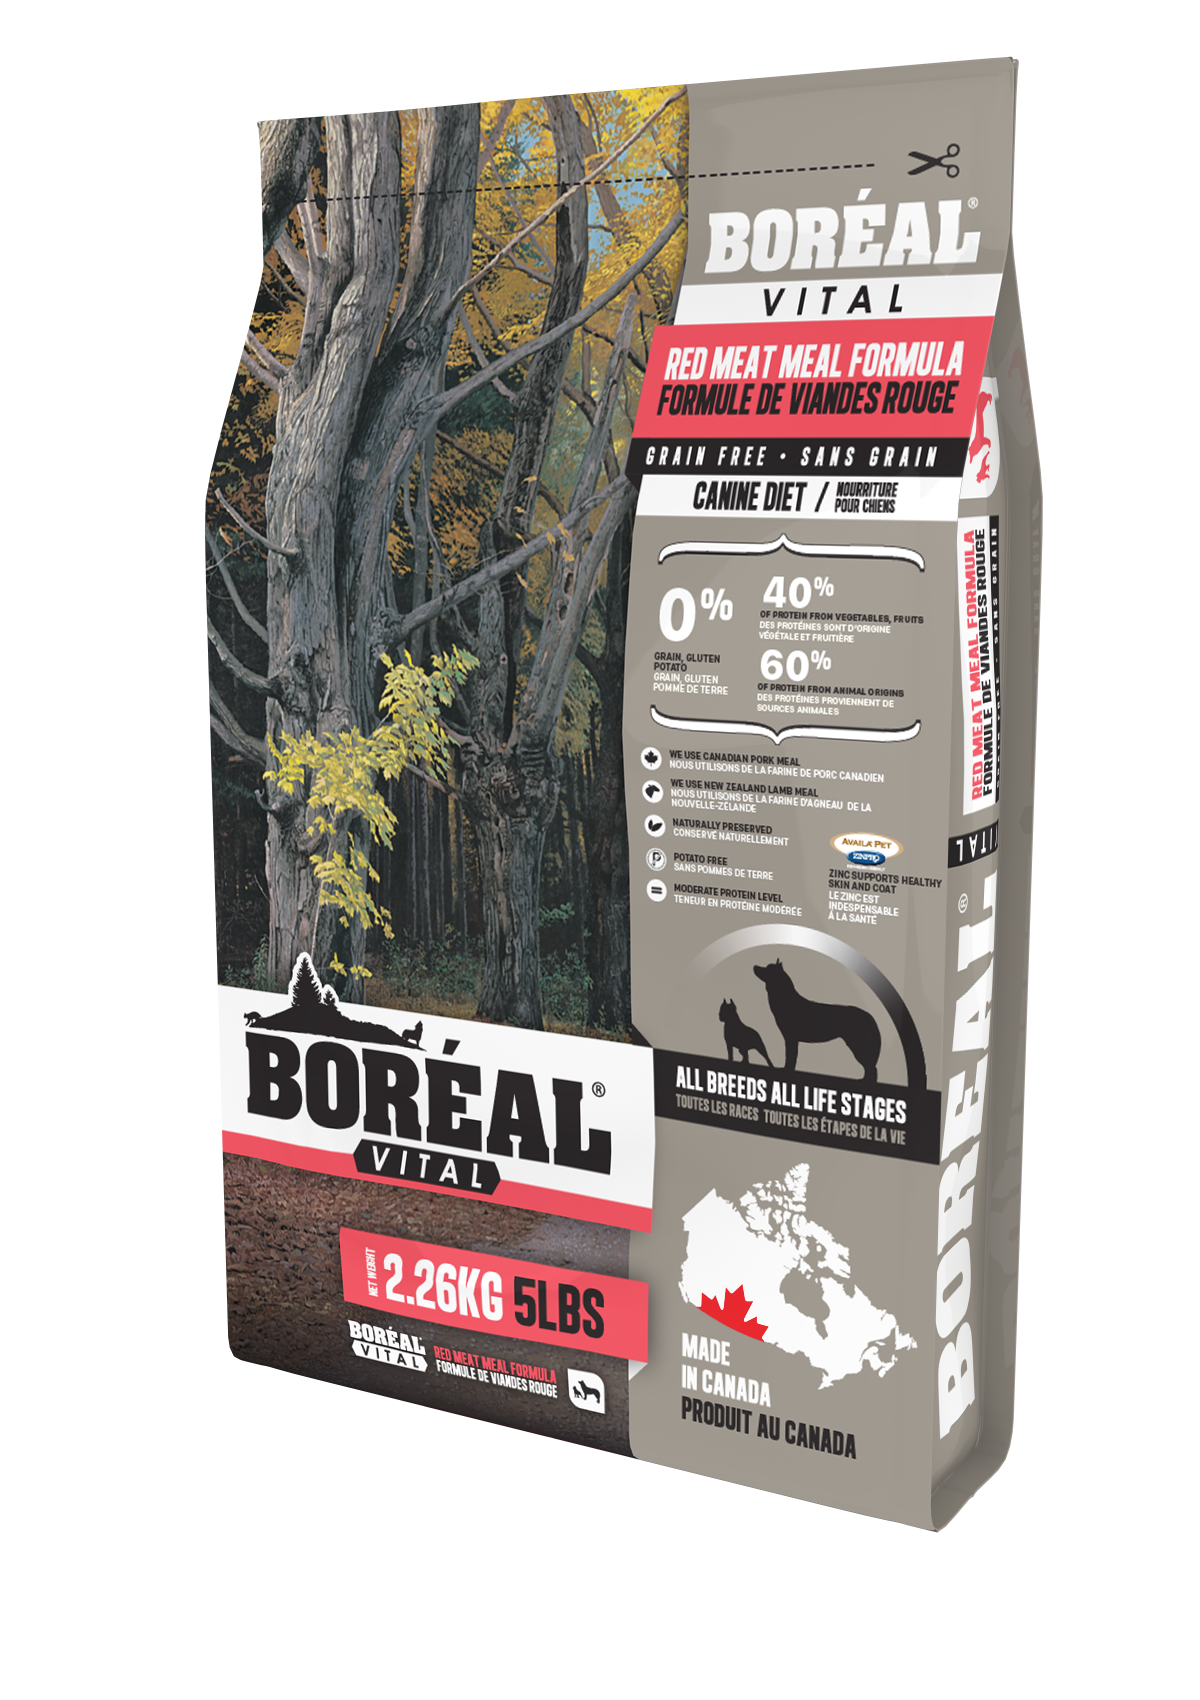 Boreal Vital All Breed Red Meal - Grain Free Dry Dog Food 5 Pound Bag at NJPetSupply.com